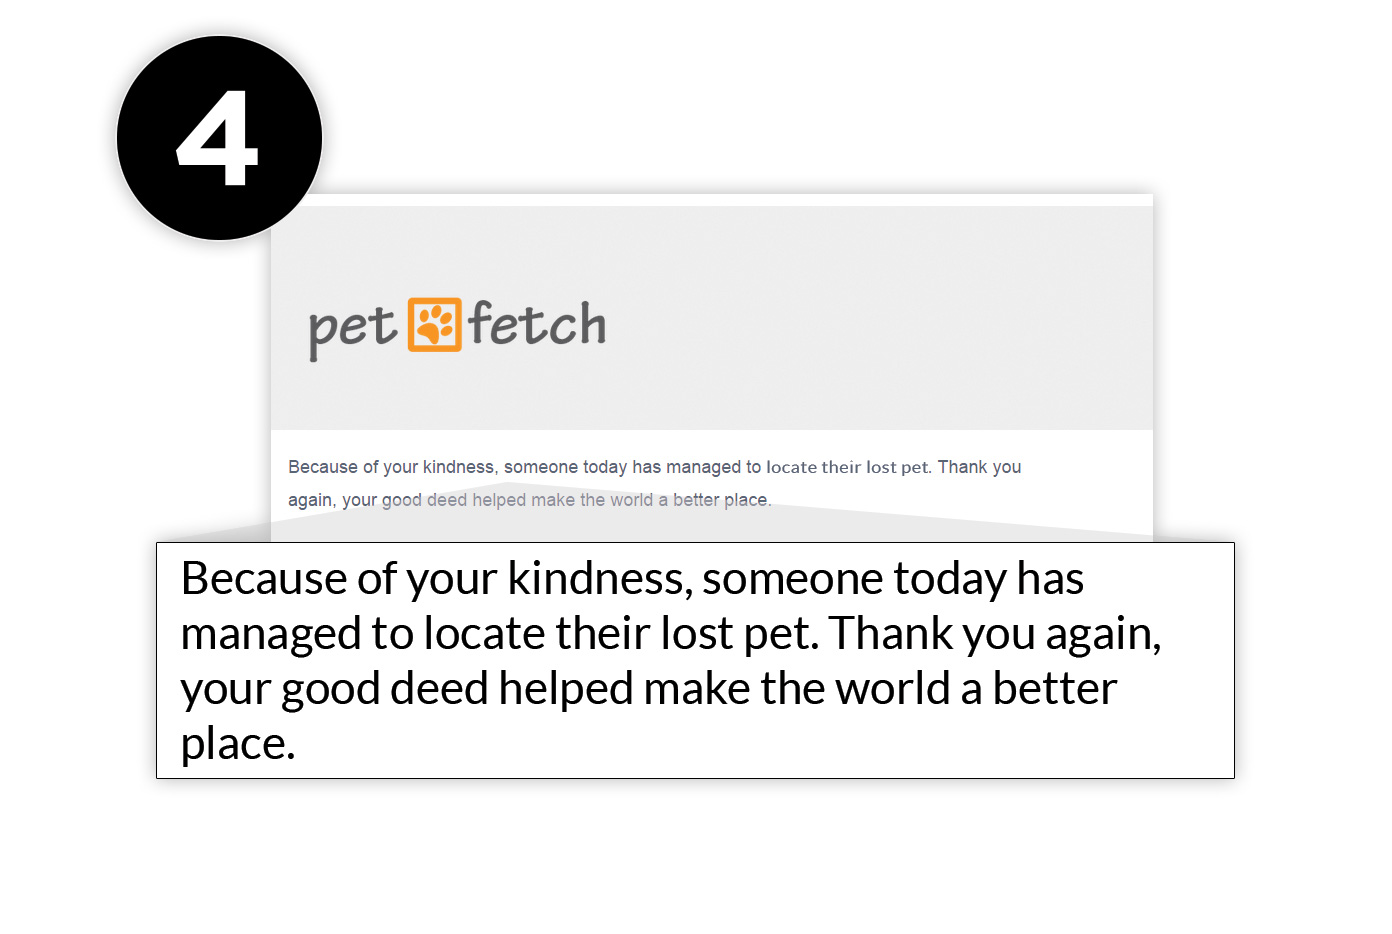 Petfetch - Protect your pets in style